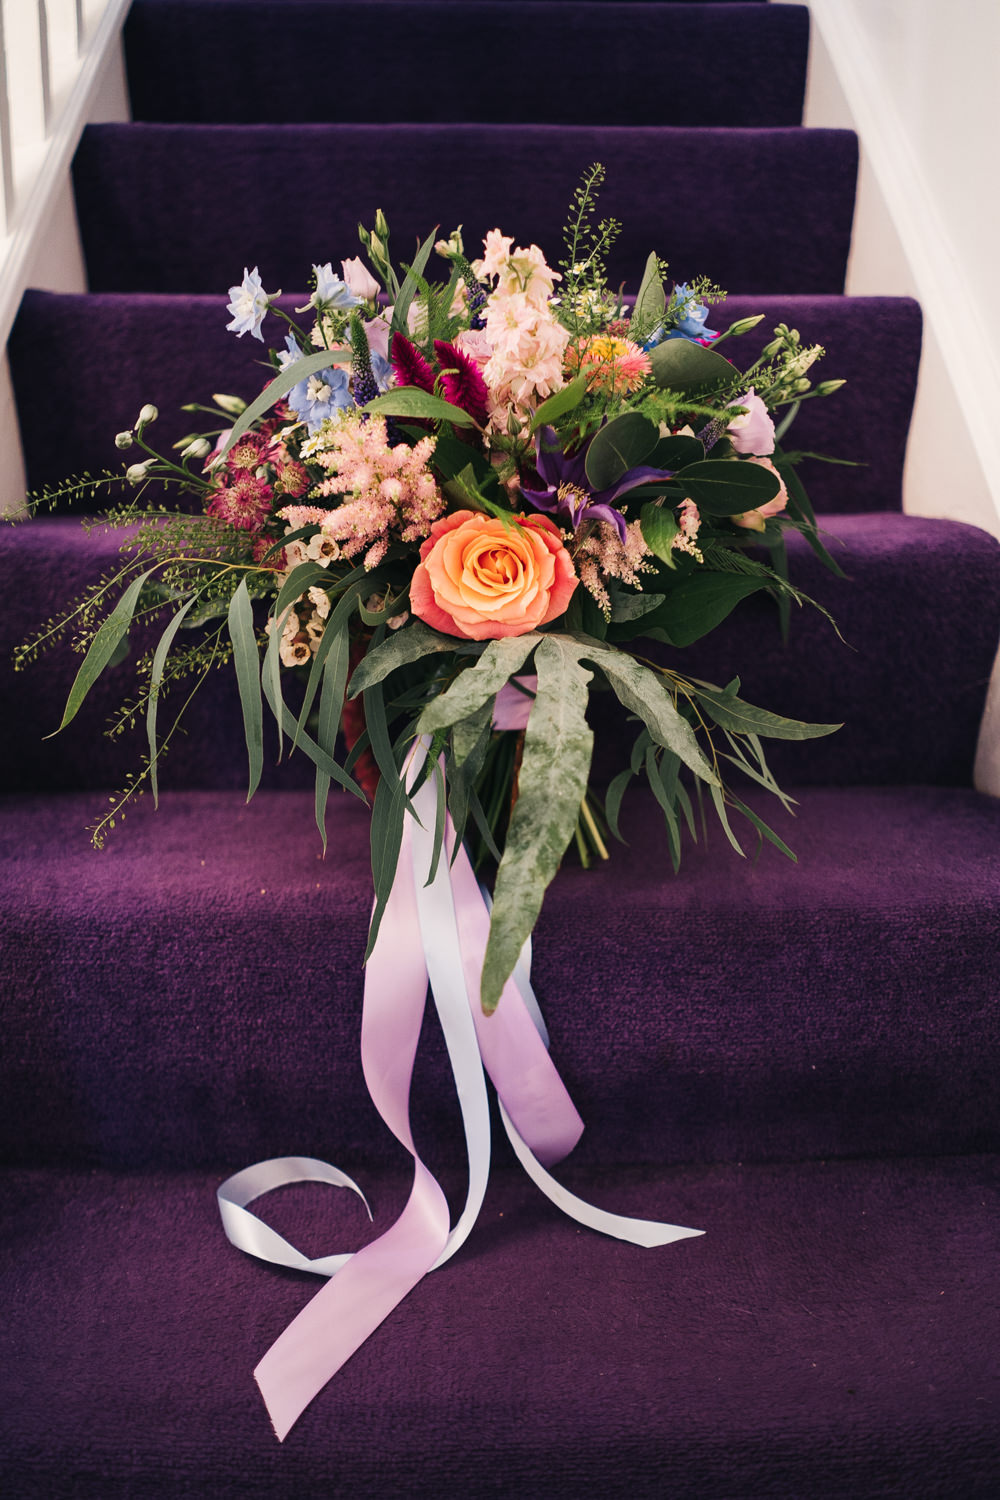 Bouquet Flowers Bride Bridal Ribbons Rose Astilbe Colourful Hammer and Pincers Wedding Sally T Photography